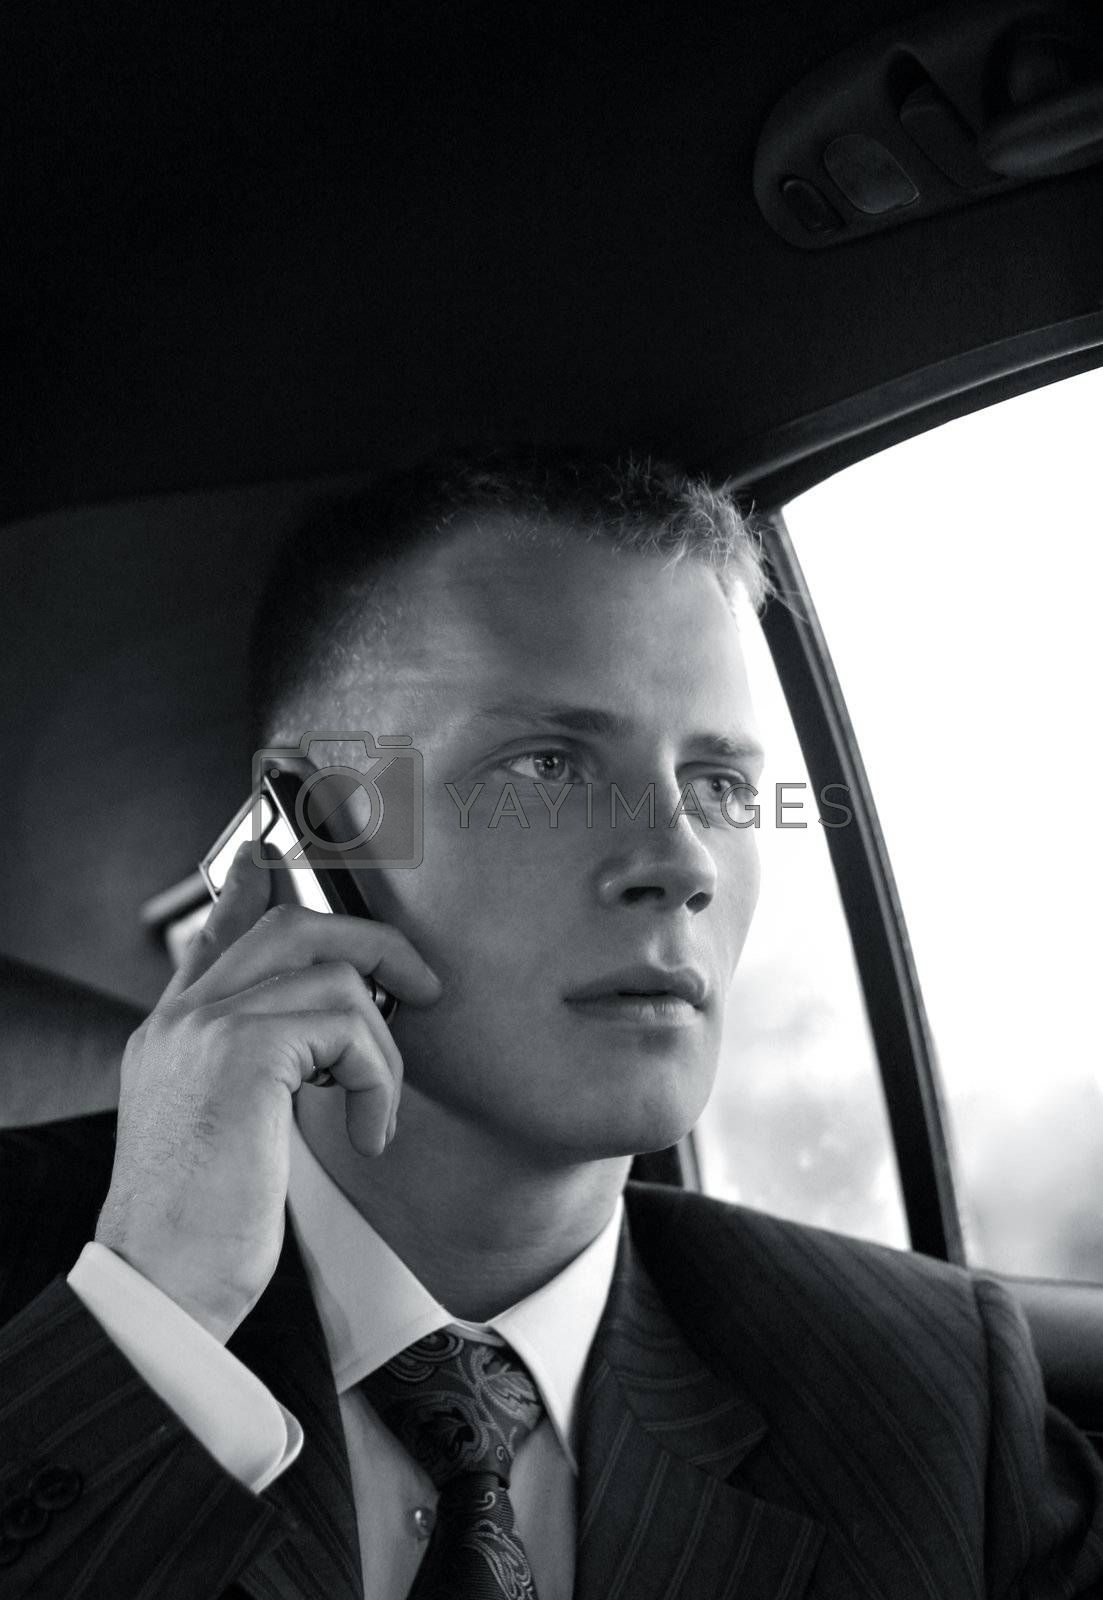 The puzzled young man speaks by the phone